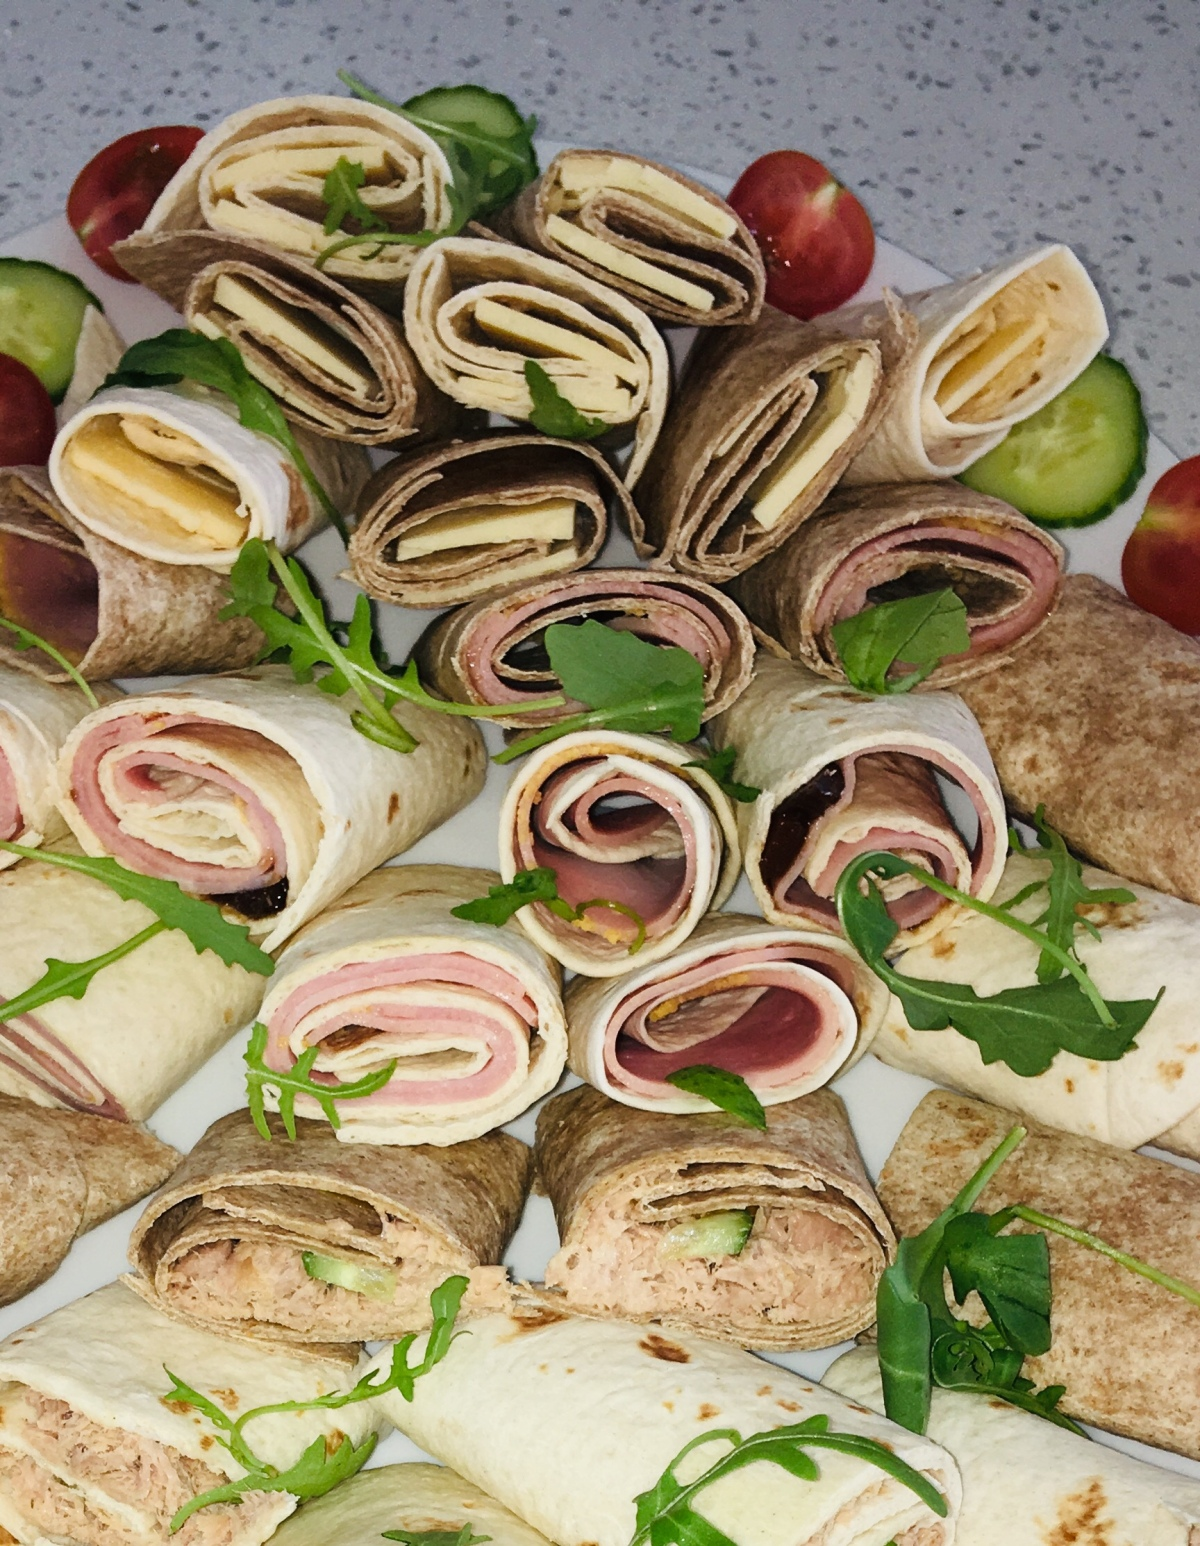 Wrap Platter For A Hungry Gathering Of Mini Eaters